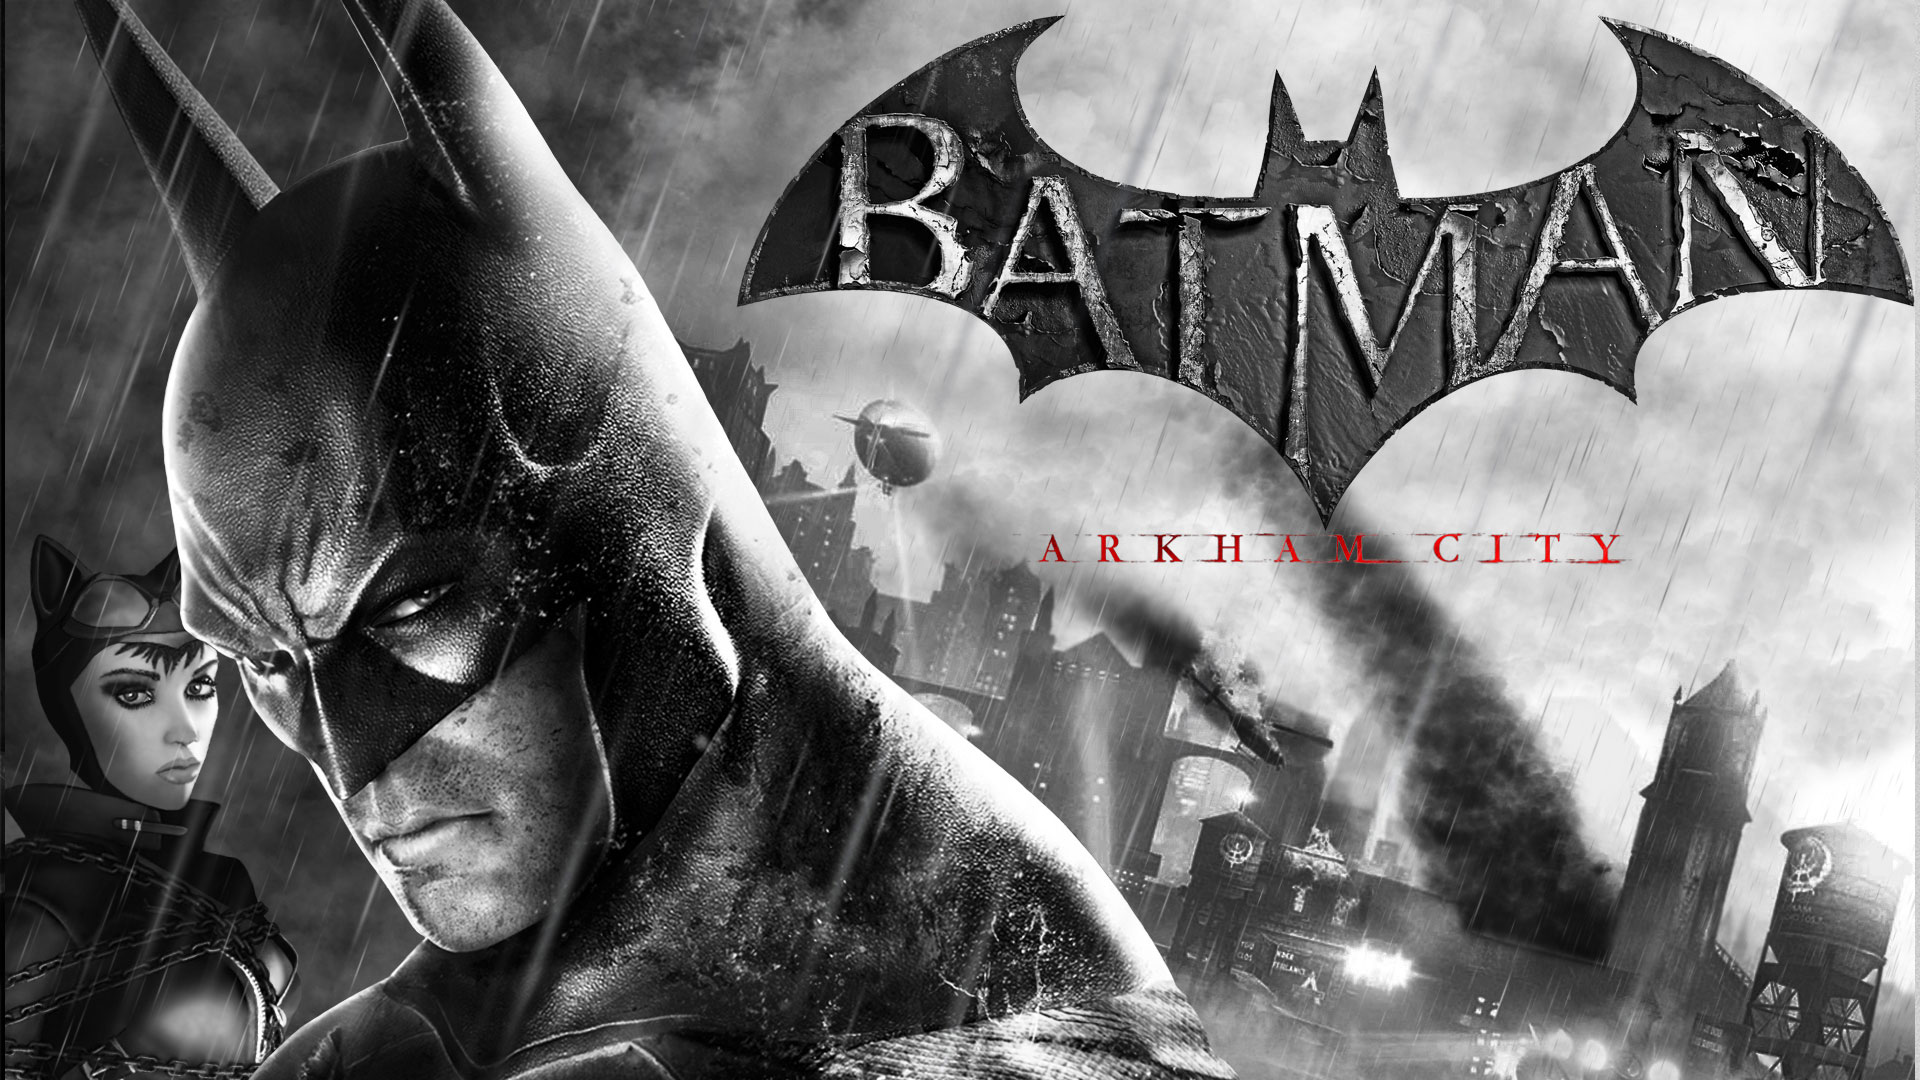 Batman Arkham City Wallpaper Hd 1080p Skinceuticals Wallpaper